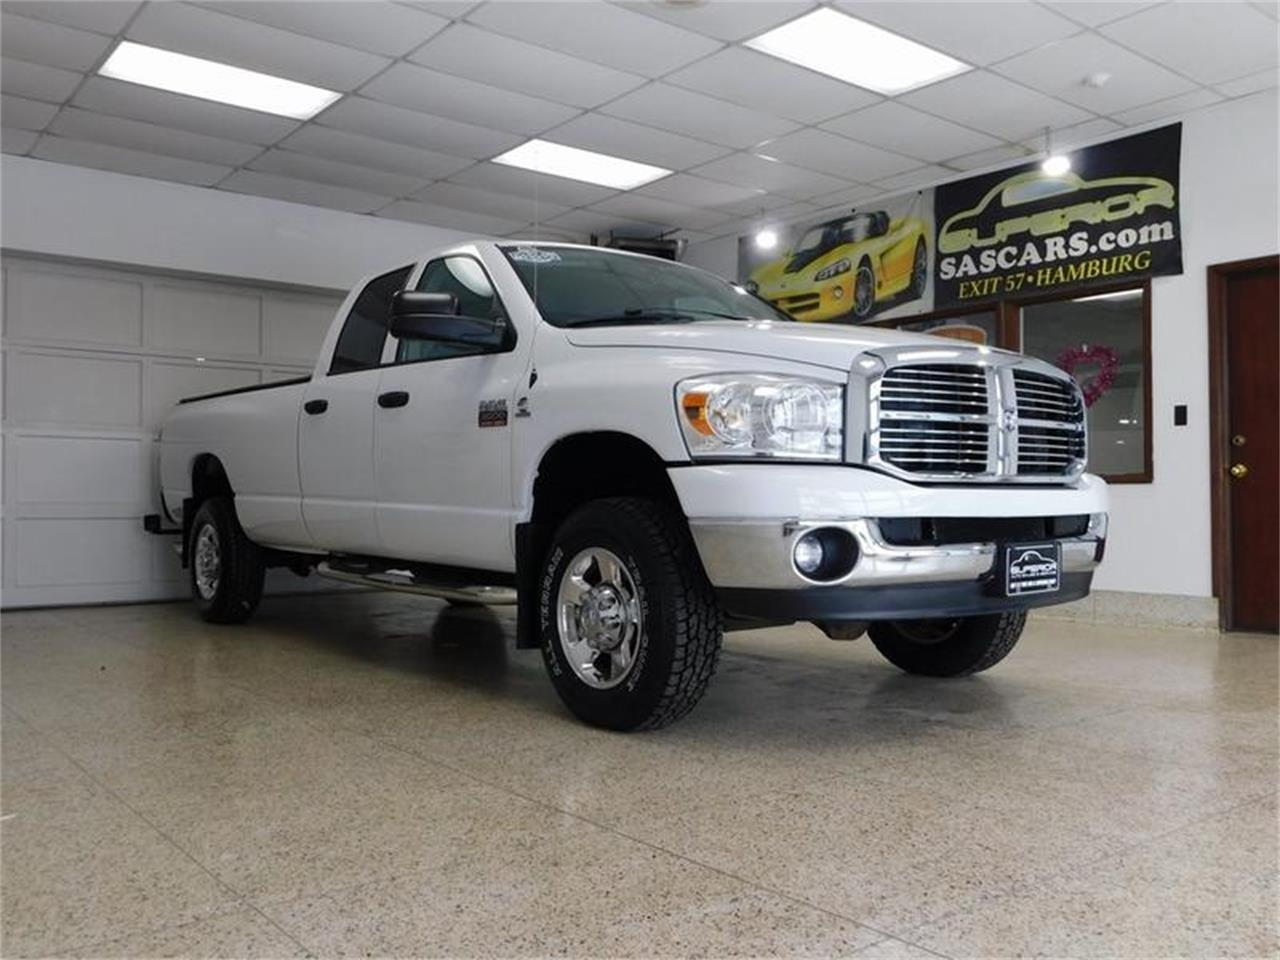 2009 Dodge Ram 3500 for sale in Hamburg, NY – photo 33